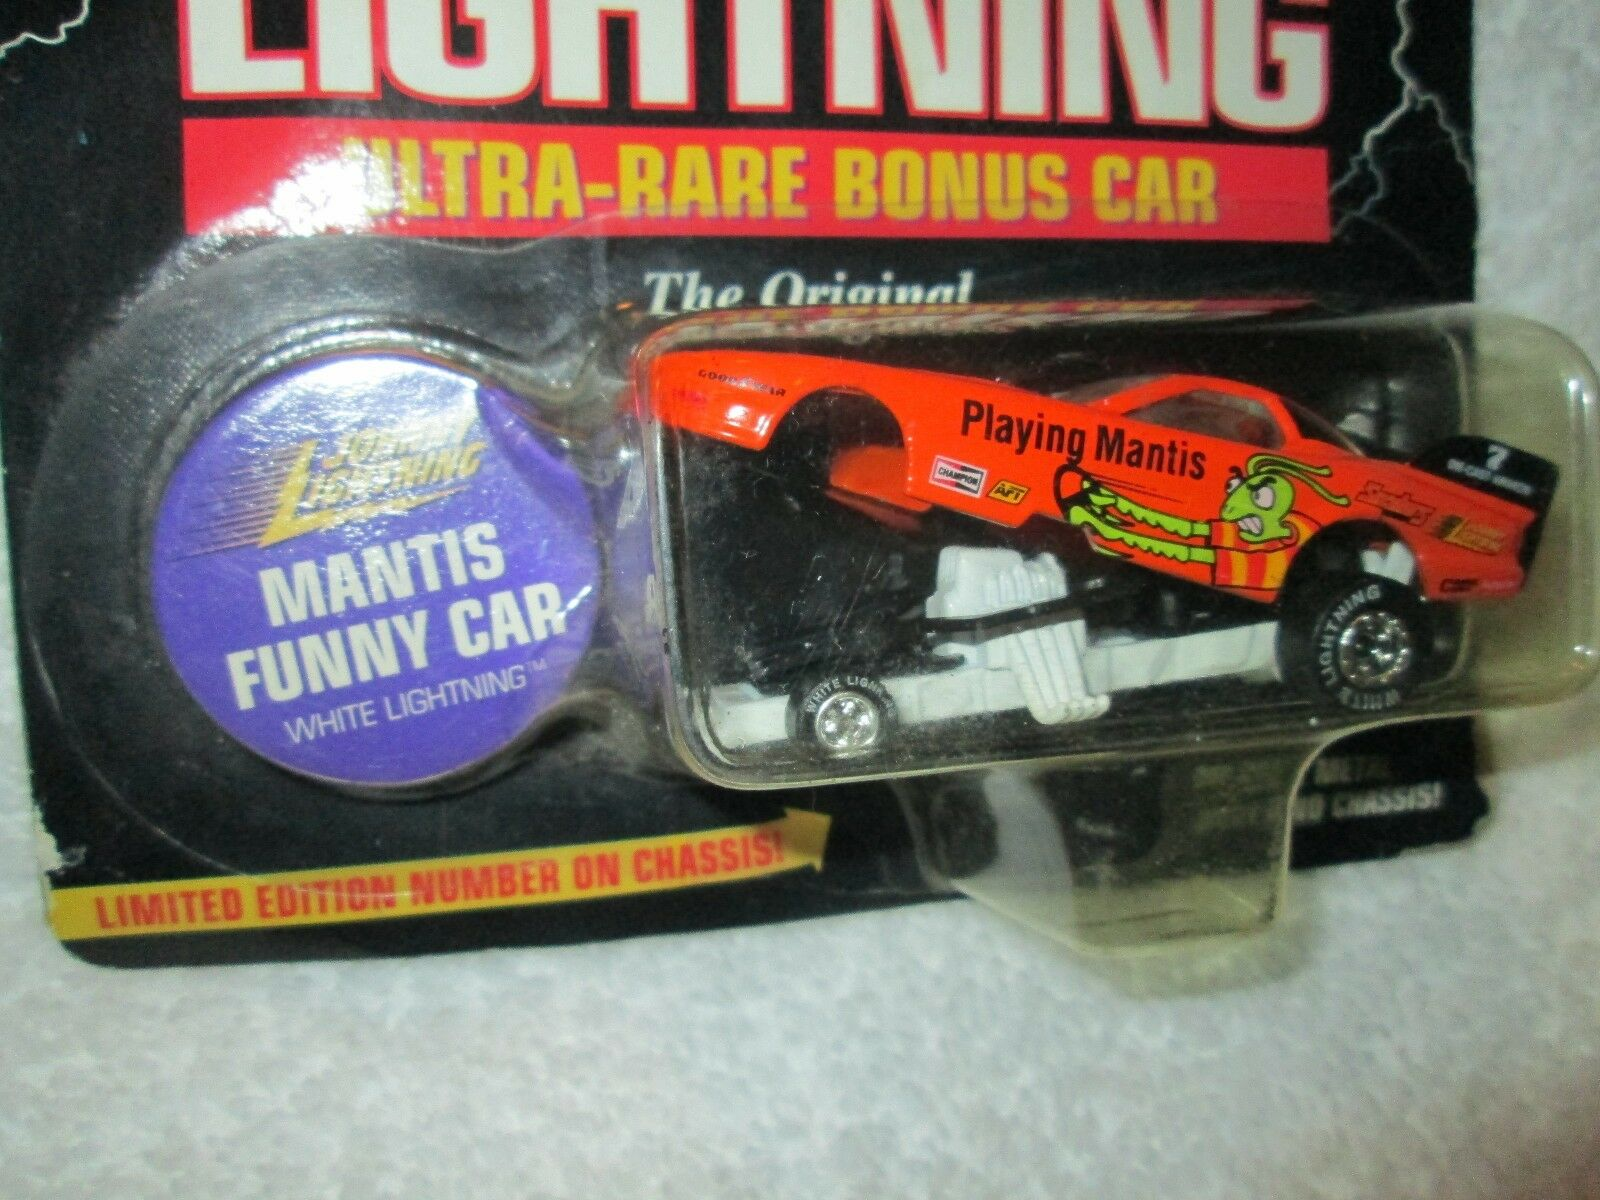 Chase JOHNNY White LIGHTNING playing mantis funny car ultra rare bonus car 1 64